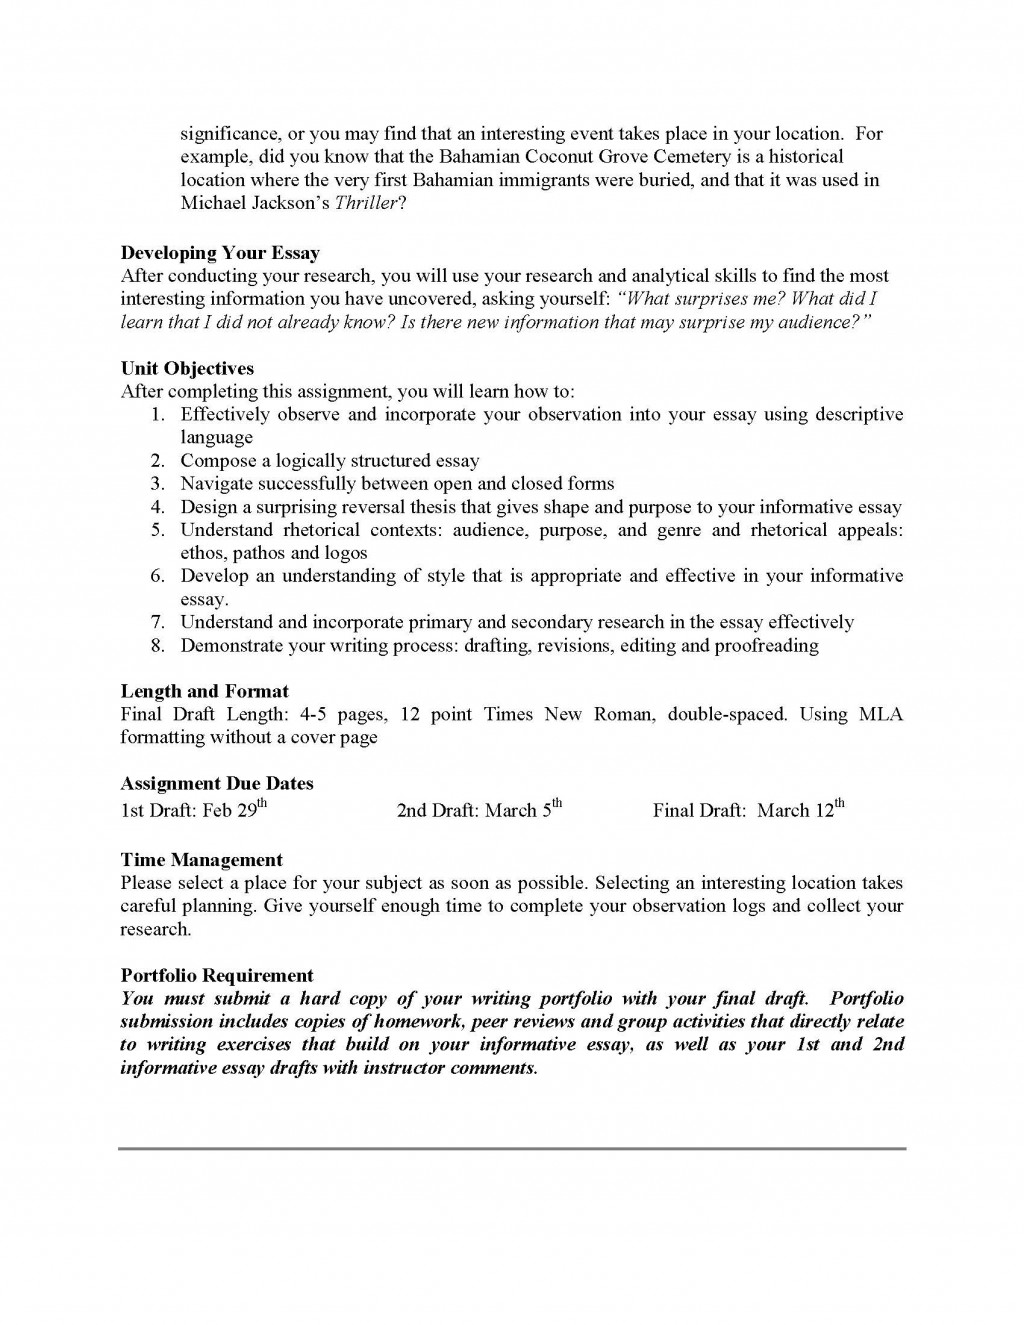 014 Informative Essay Unit Assignment Page 2 Dreaded Graphic Organizer Prompts Middle School 3rd Grade Large